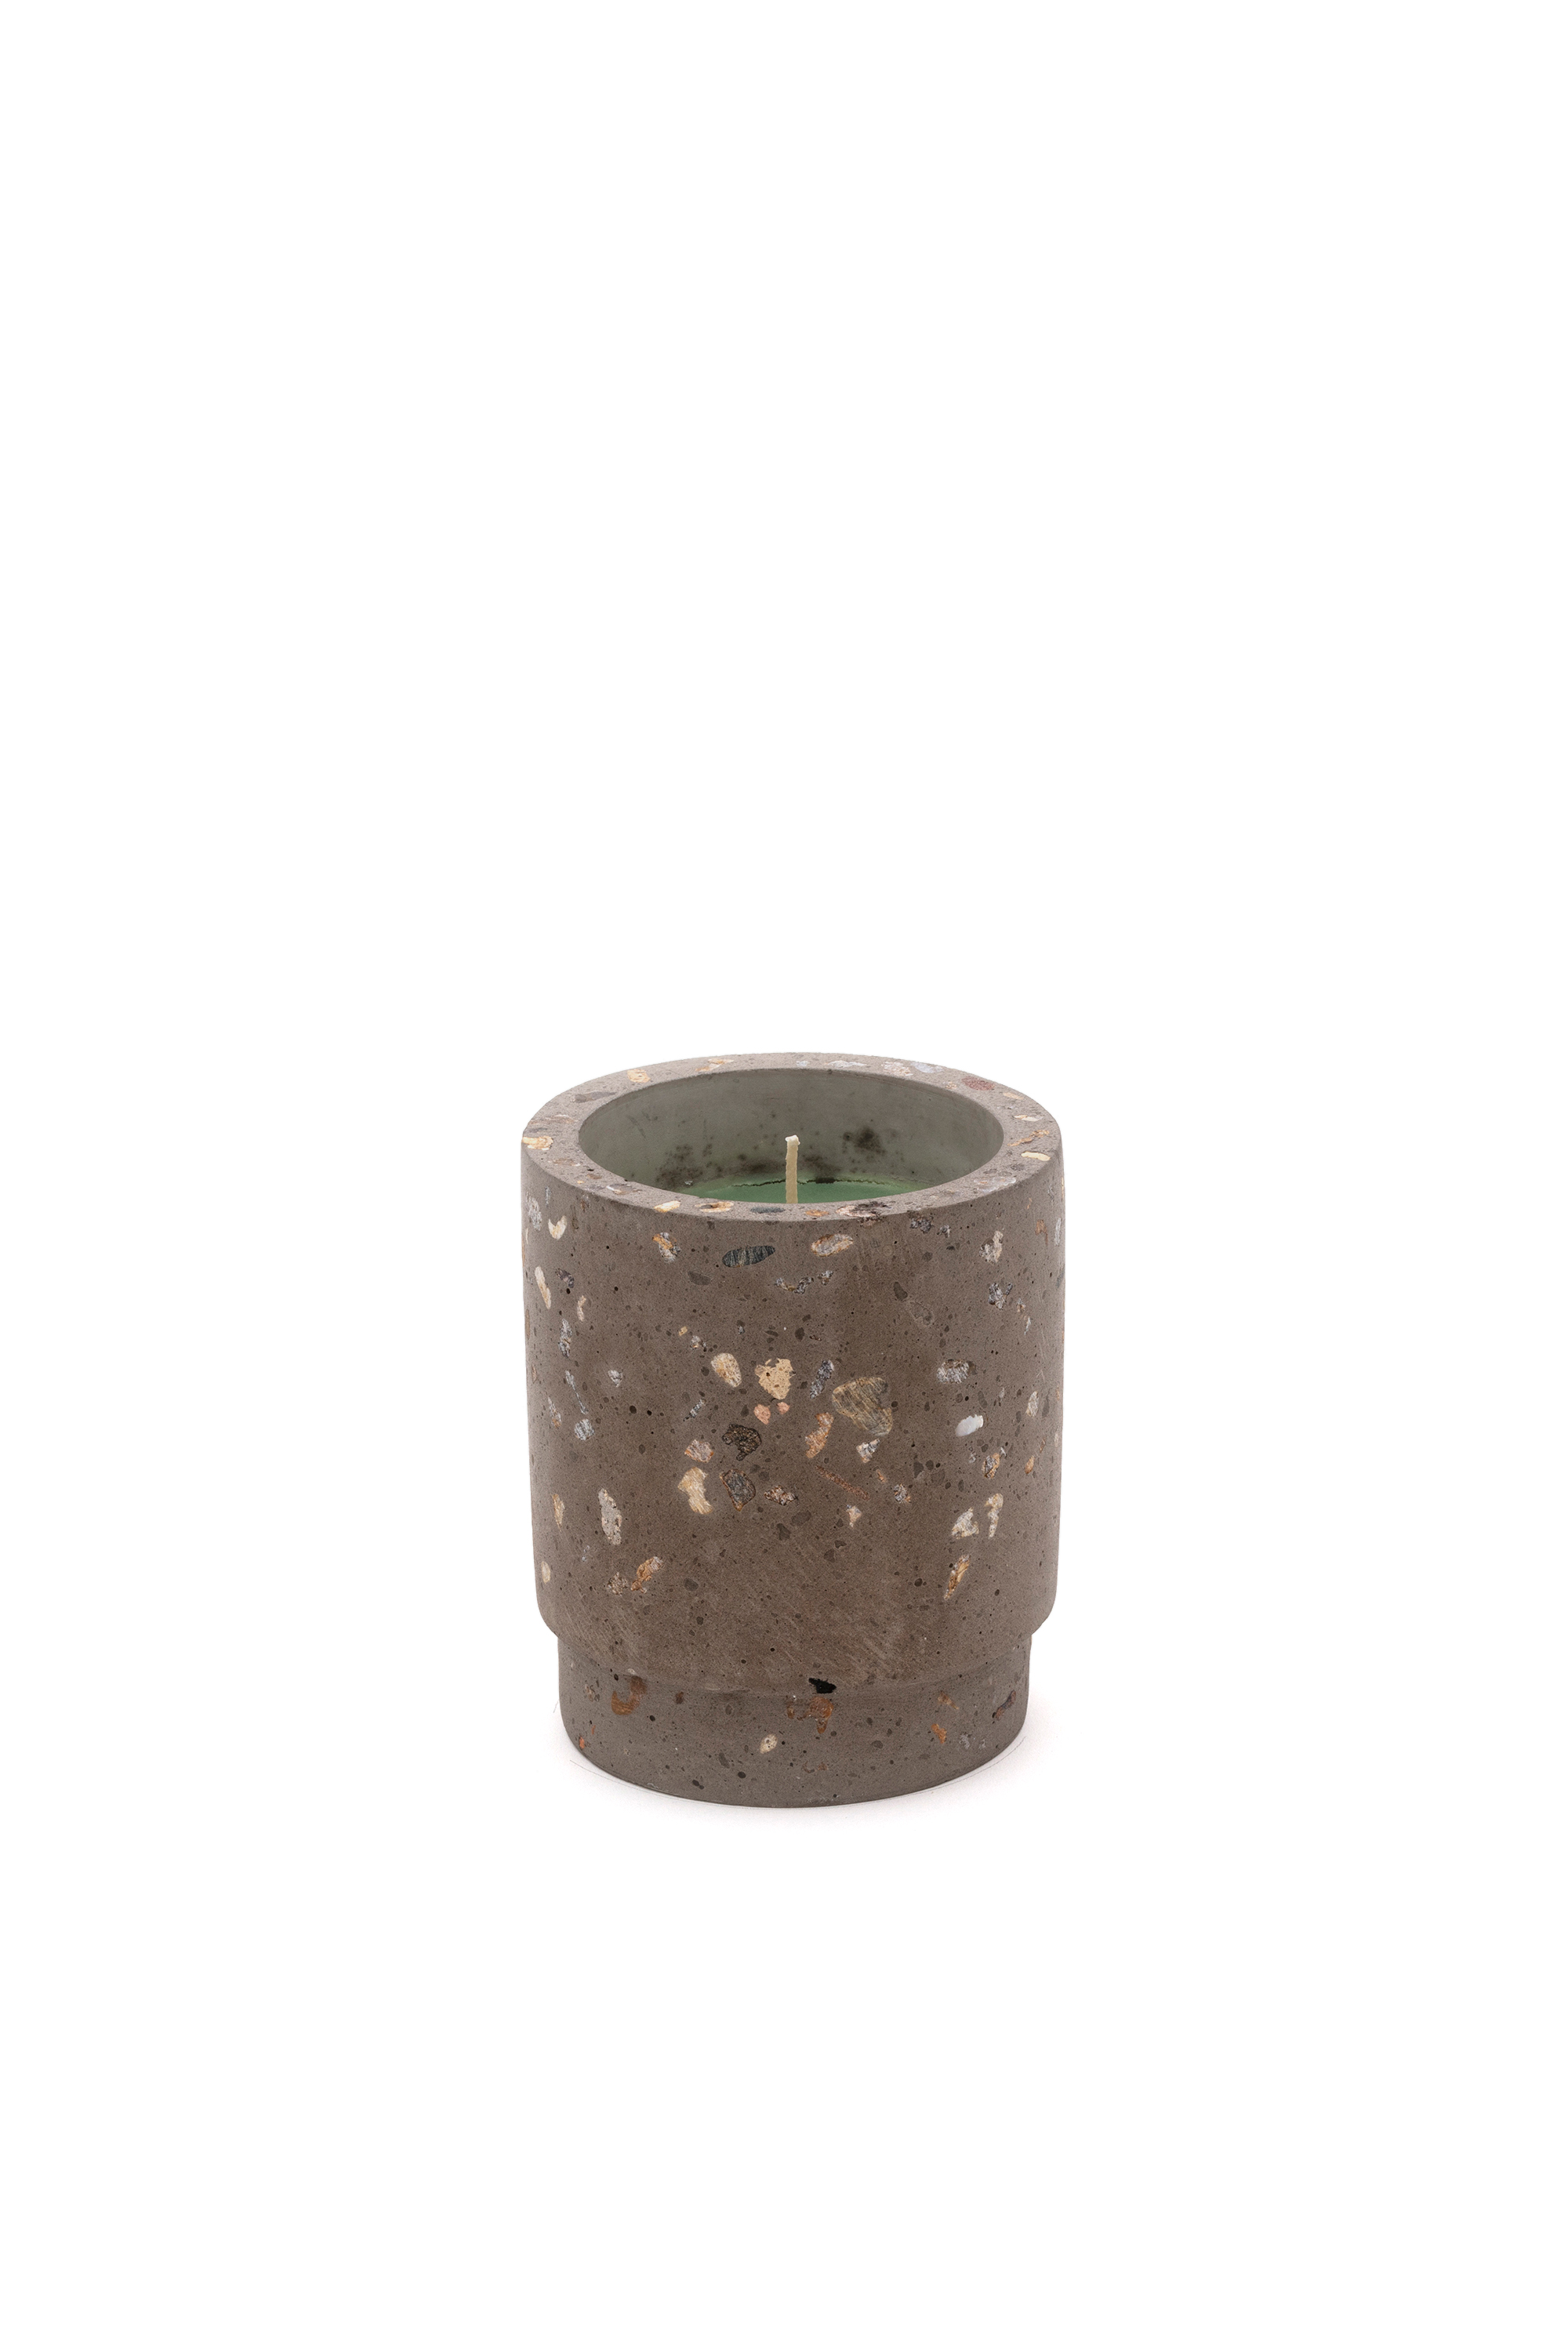 Diesel - 11150 HOME SCENTS,  - Home Accessories - Image 1